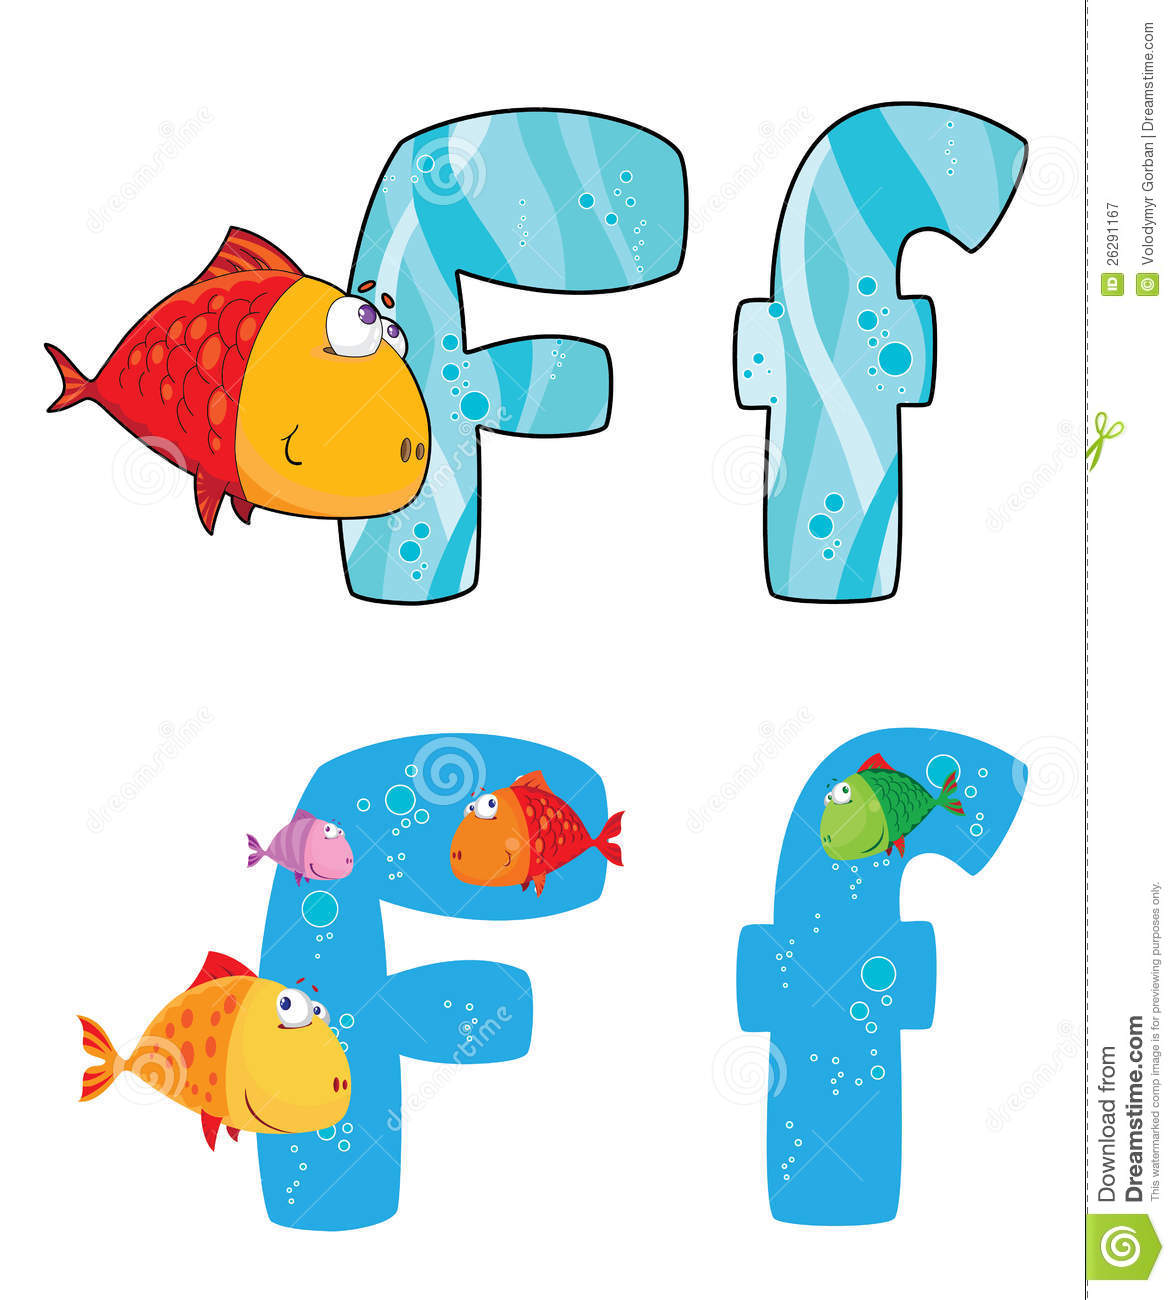 Letter F Fish Royalty Free Stock Photography - Image: 26291167